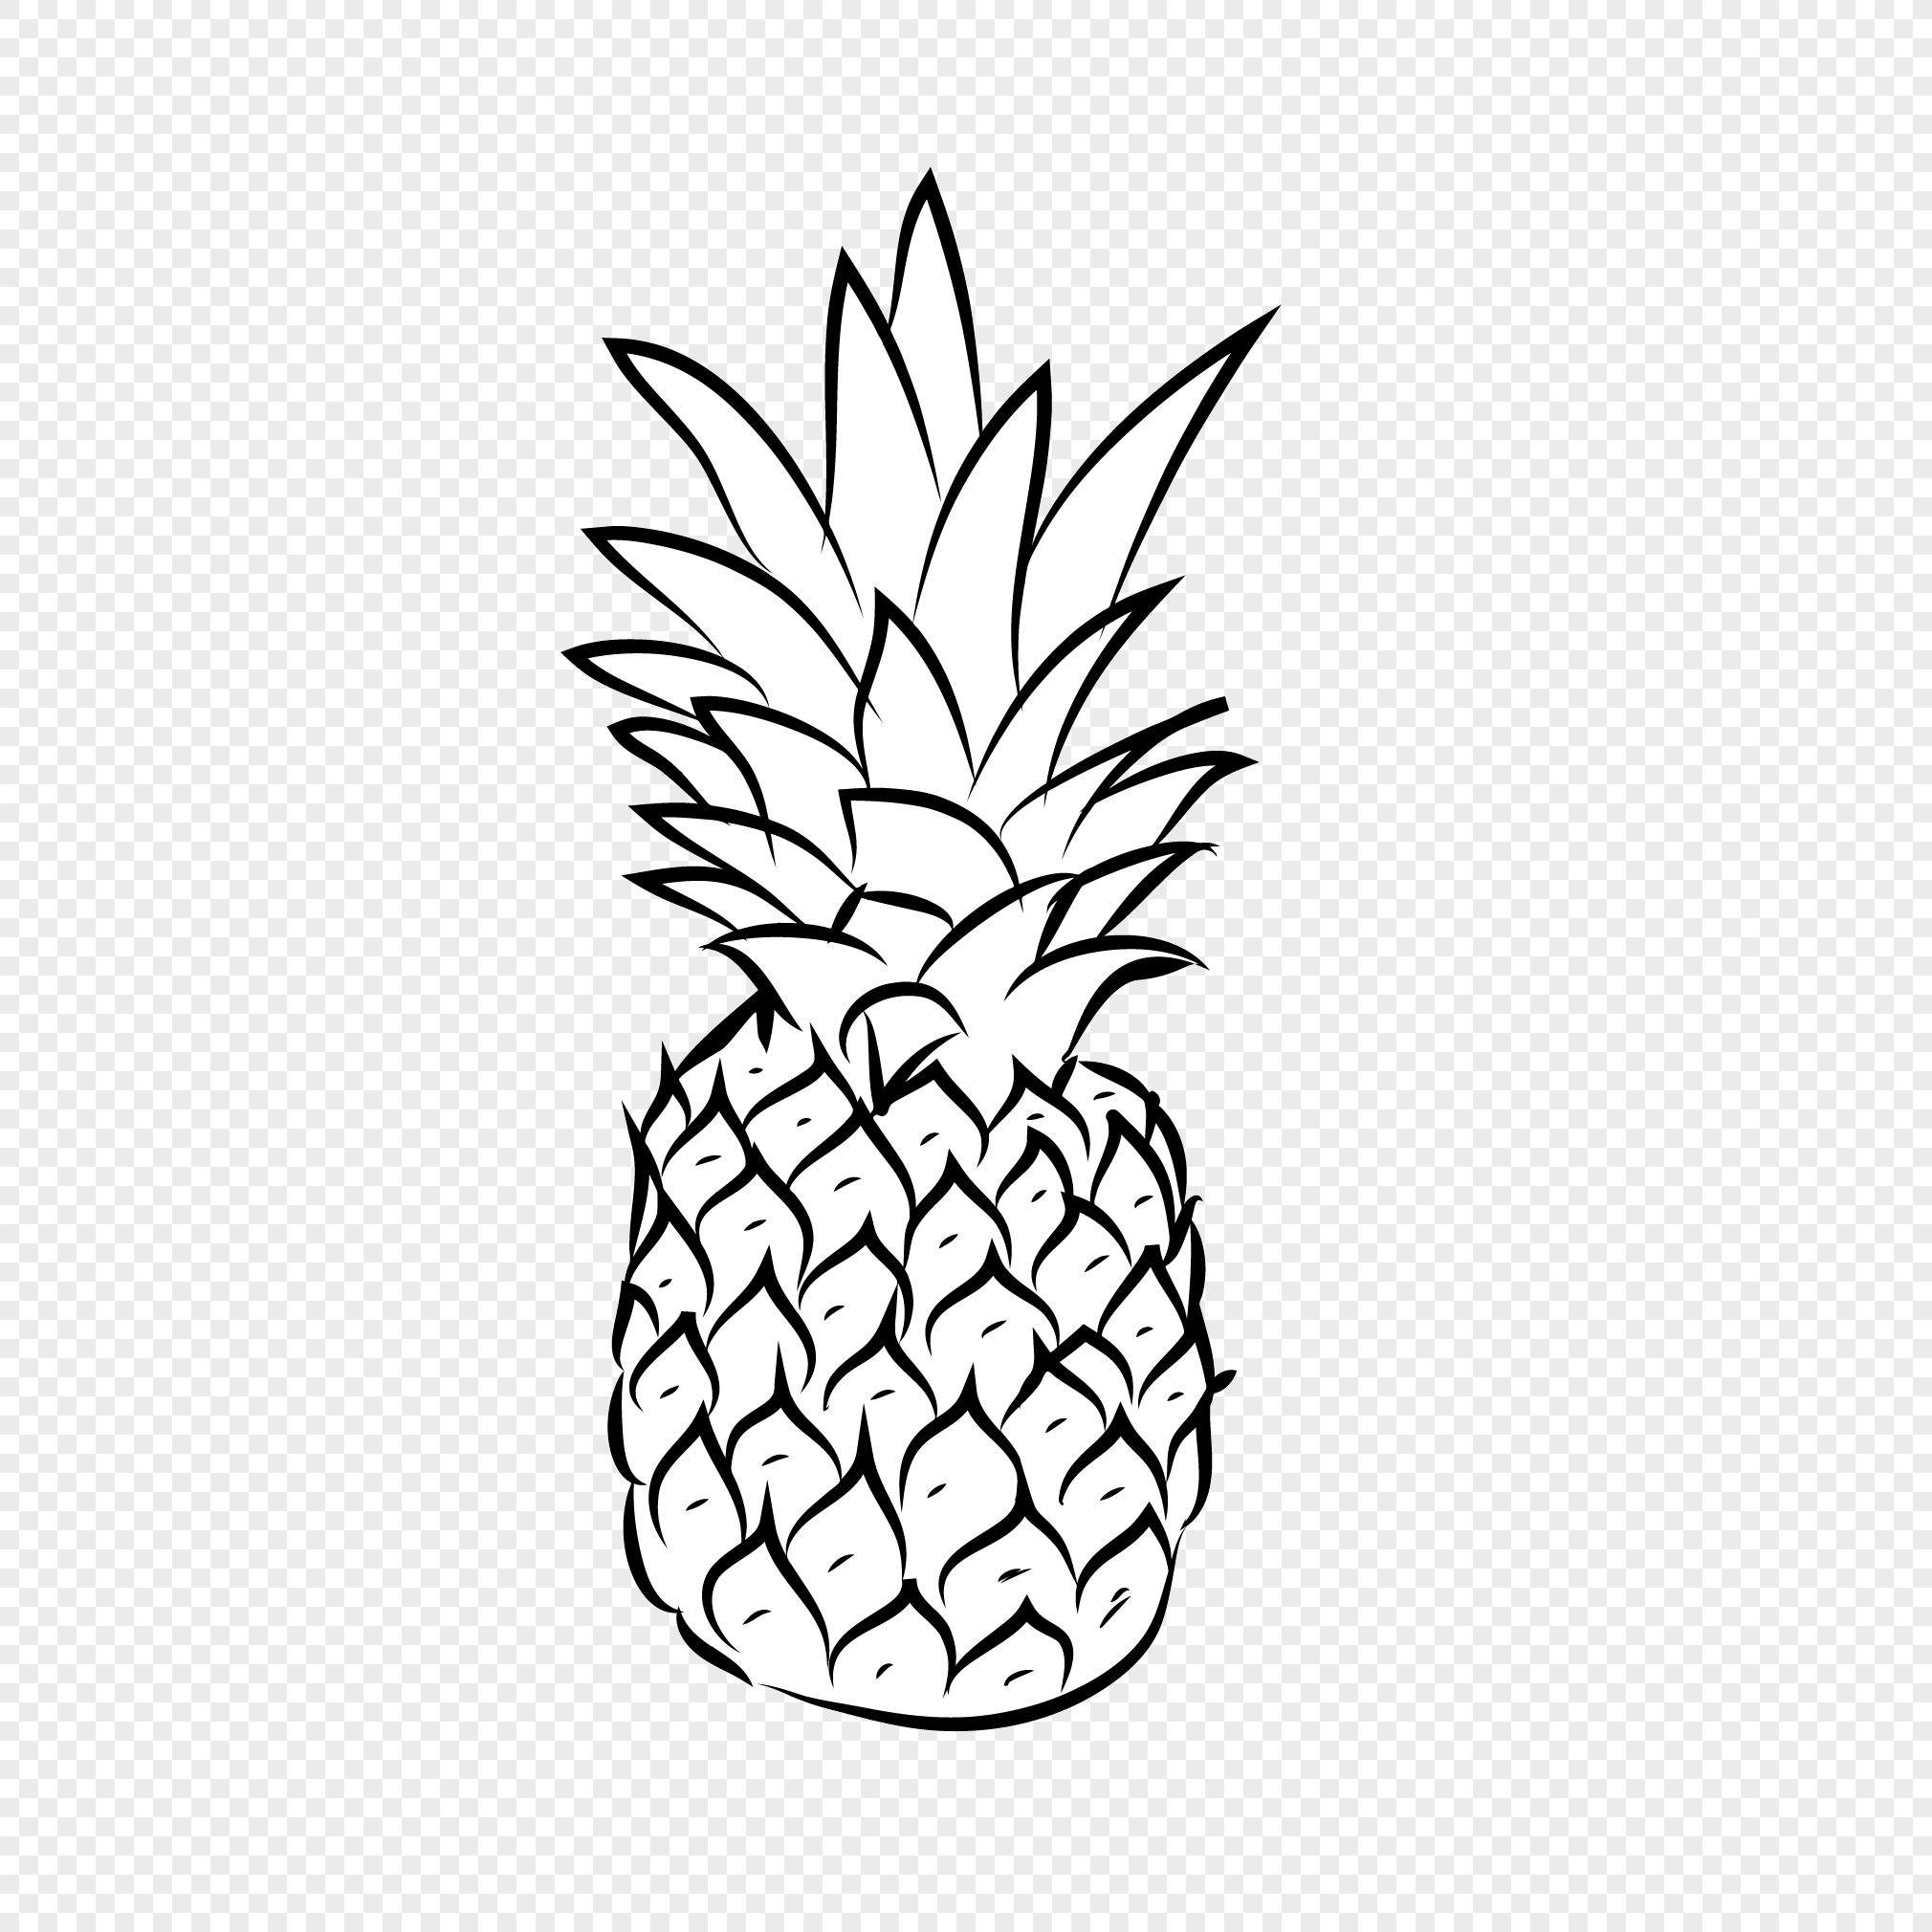 pineapple drawing download high quality pineapple clipart stencil pineapple drawing